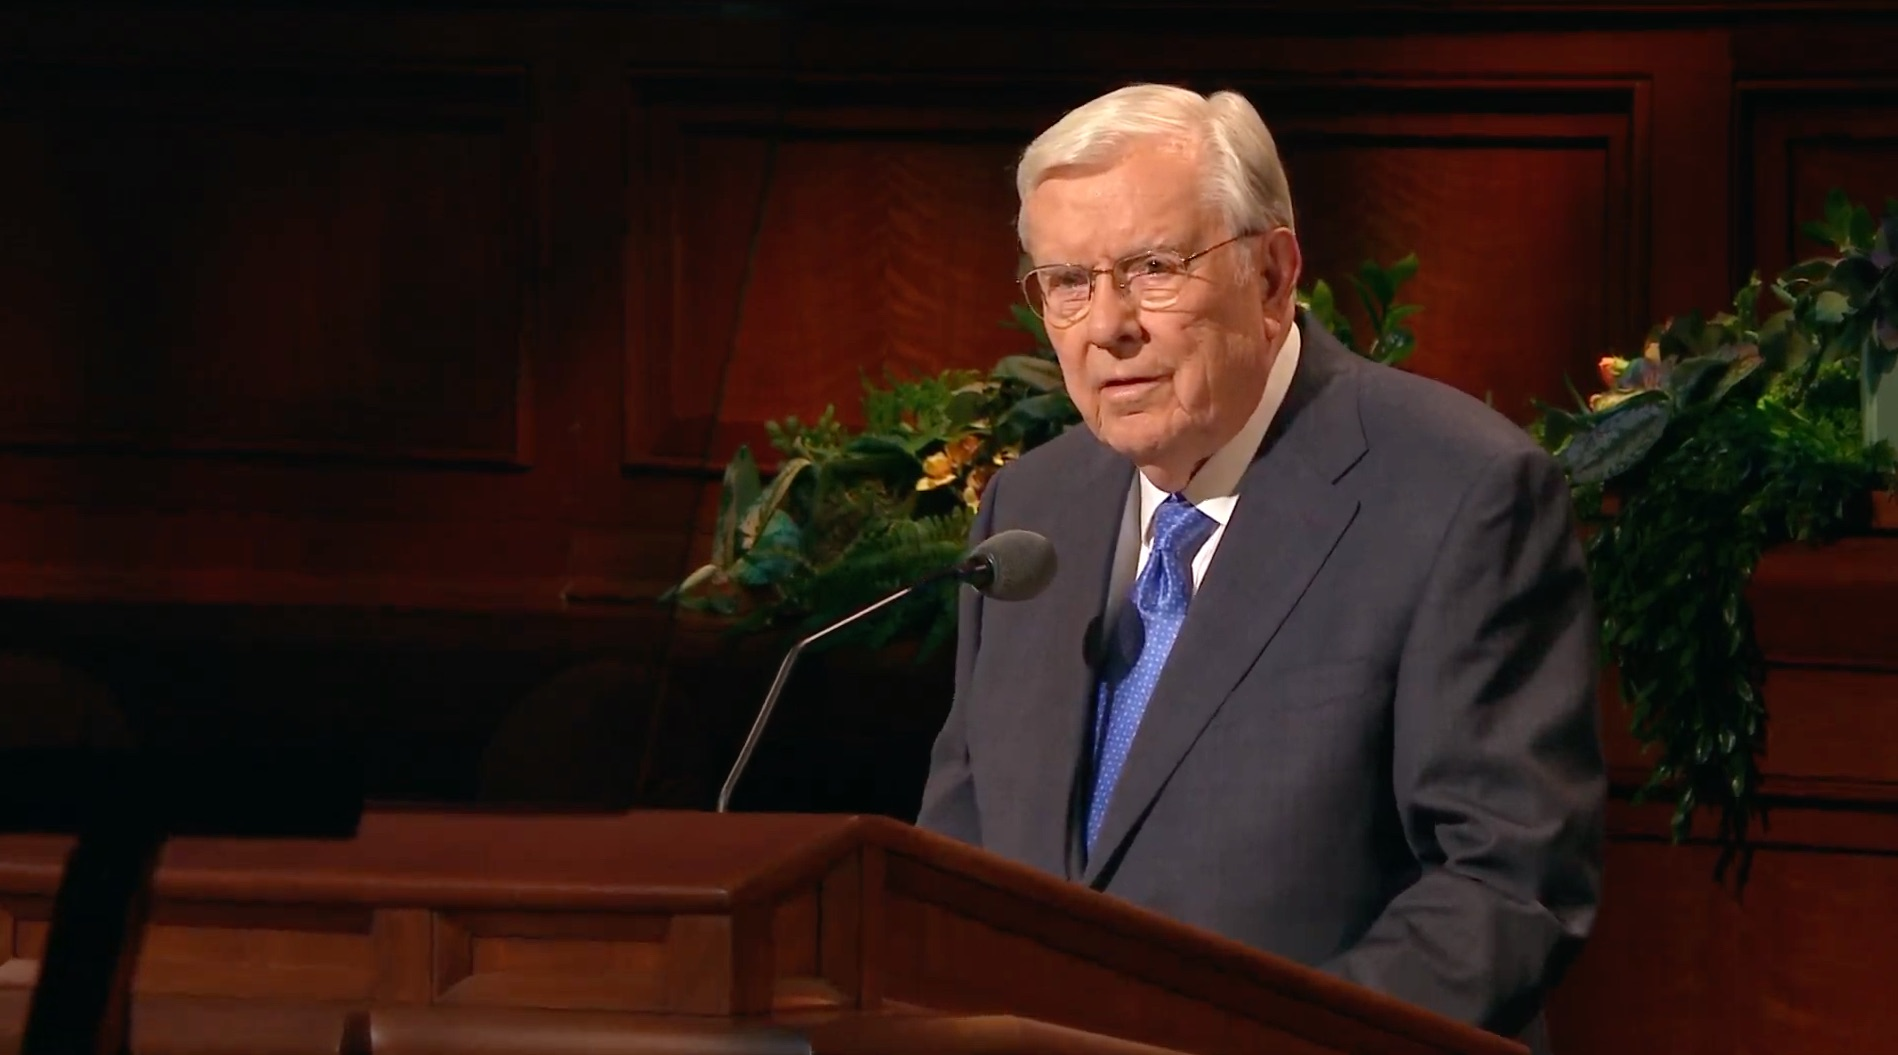 President M. Russell Ballard, Acting President of the Quorum of the Twelve Apostles, gives his address during the Saturday afternoon session of the 189th Annual General Conference on April 6, 2019.